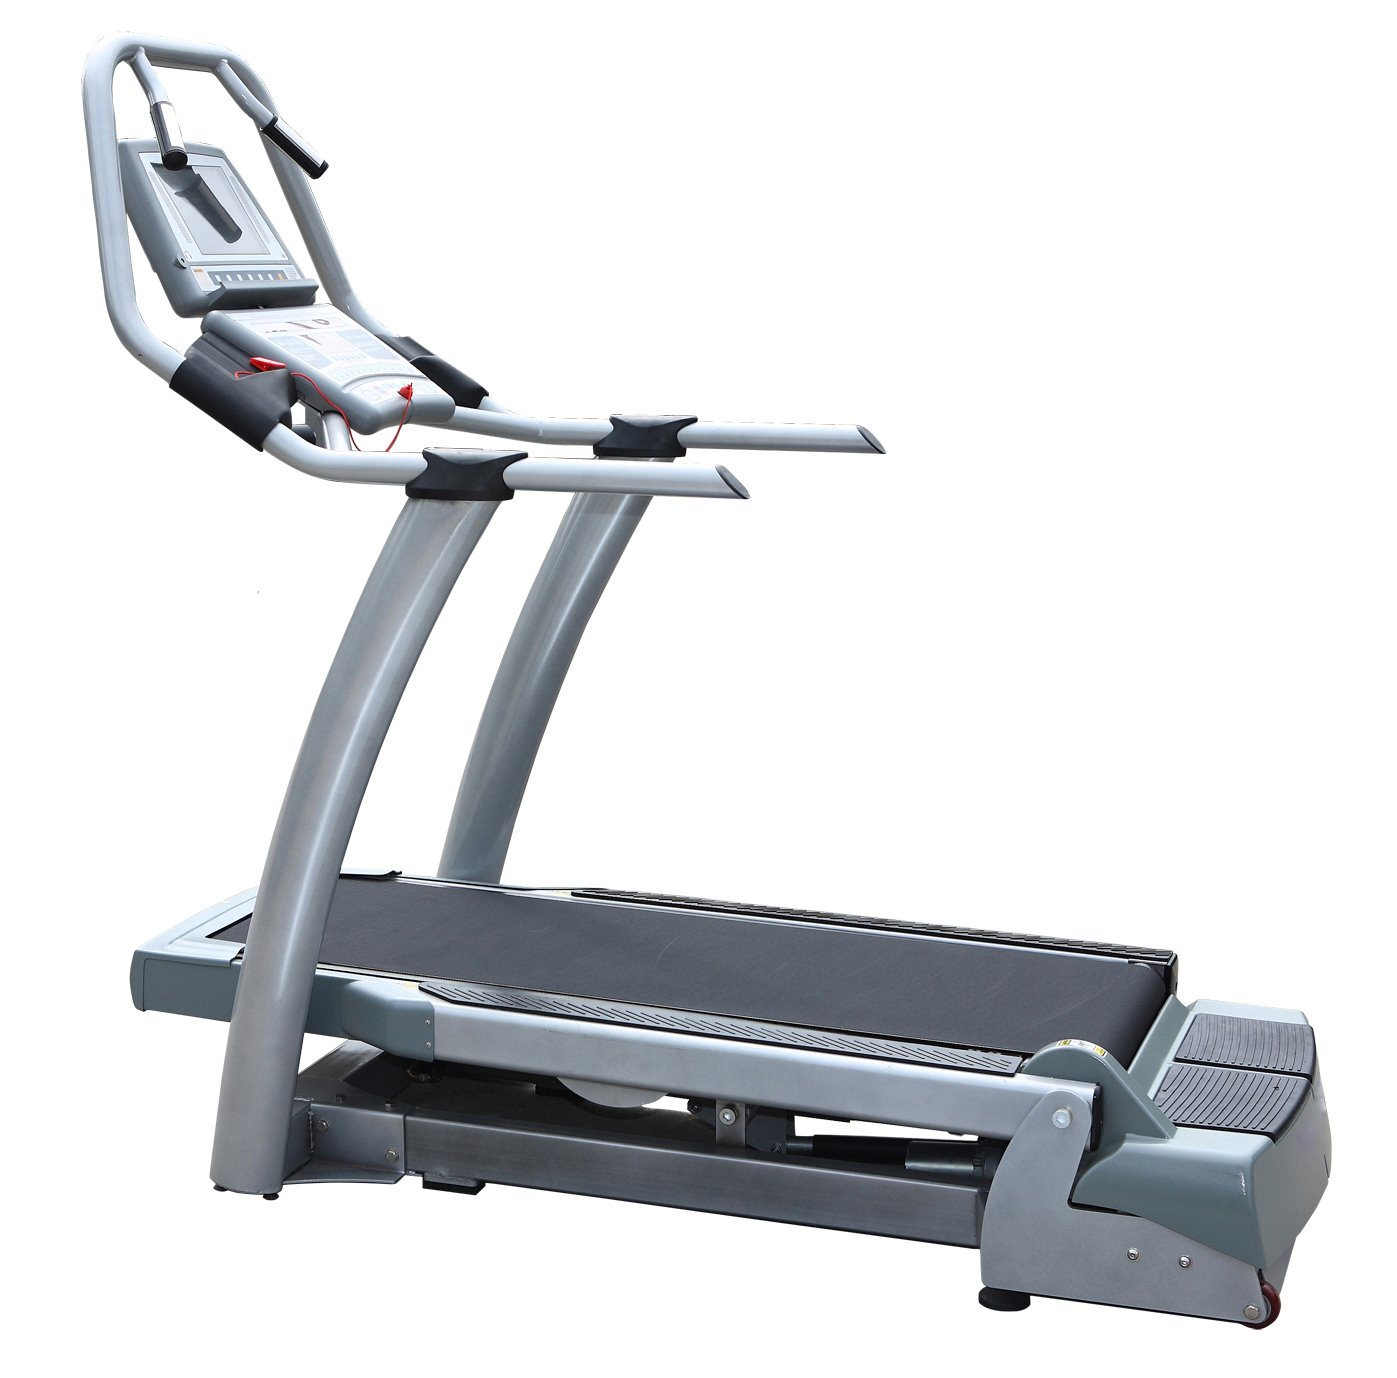 2017 Freemotion Incline Trainer with Workout TV (SK-09)